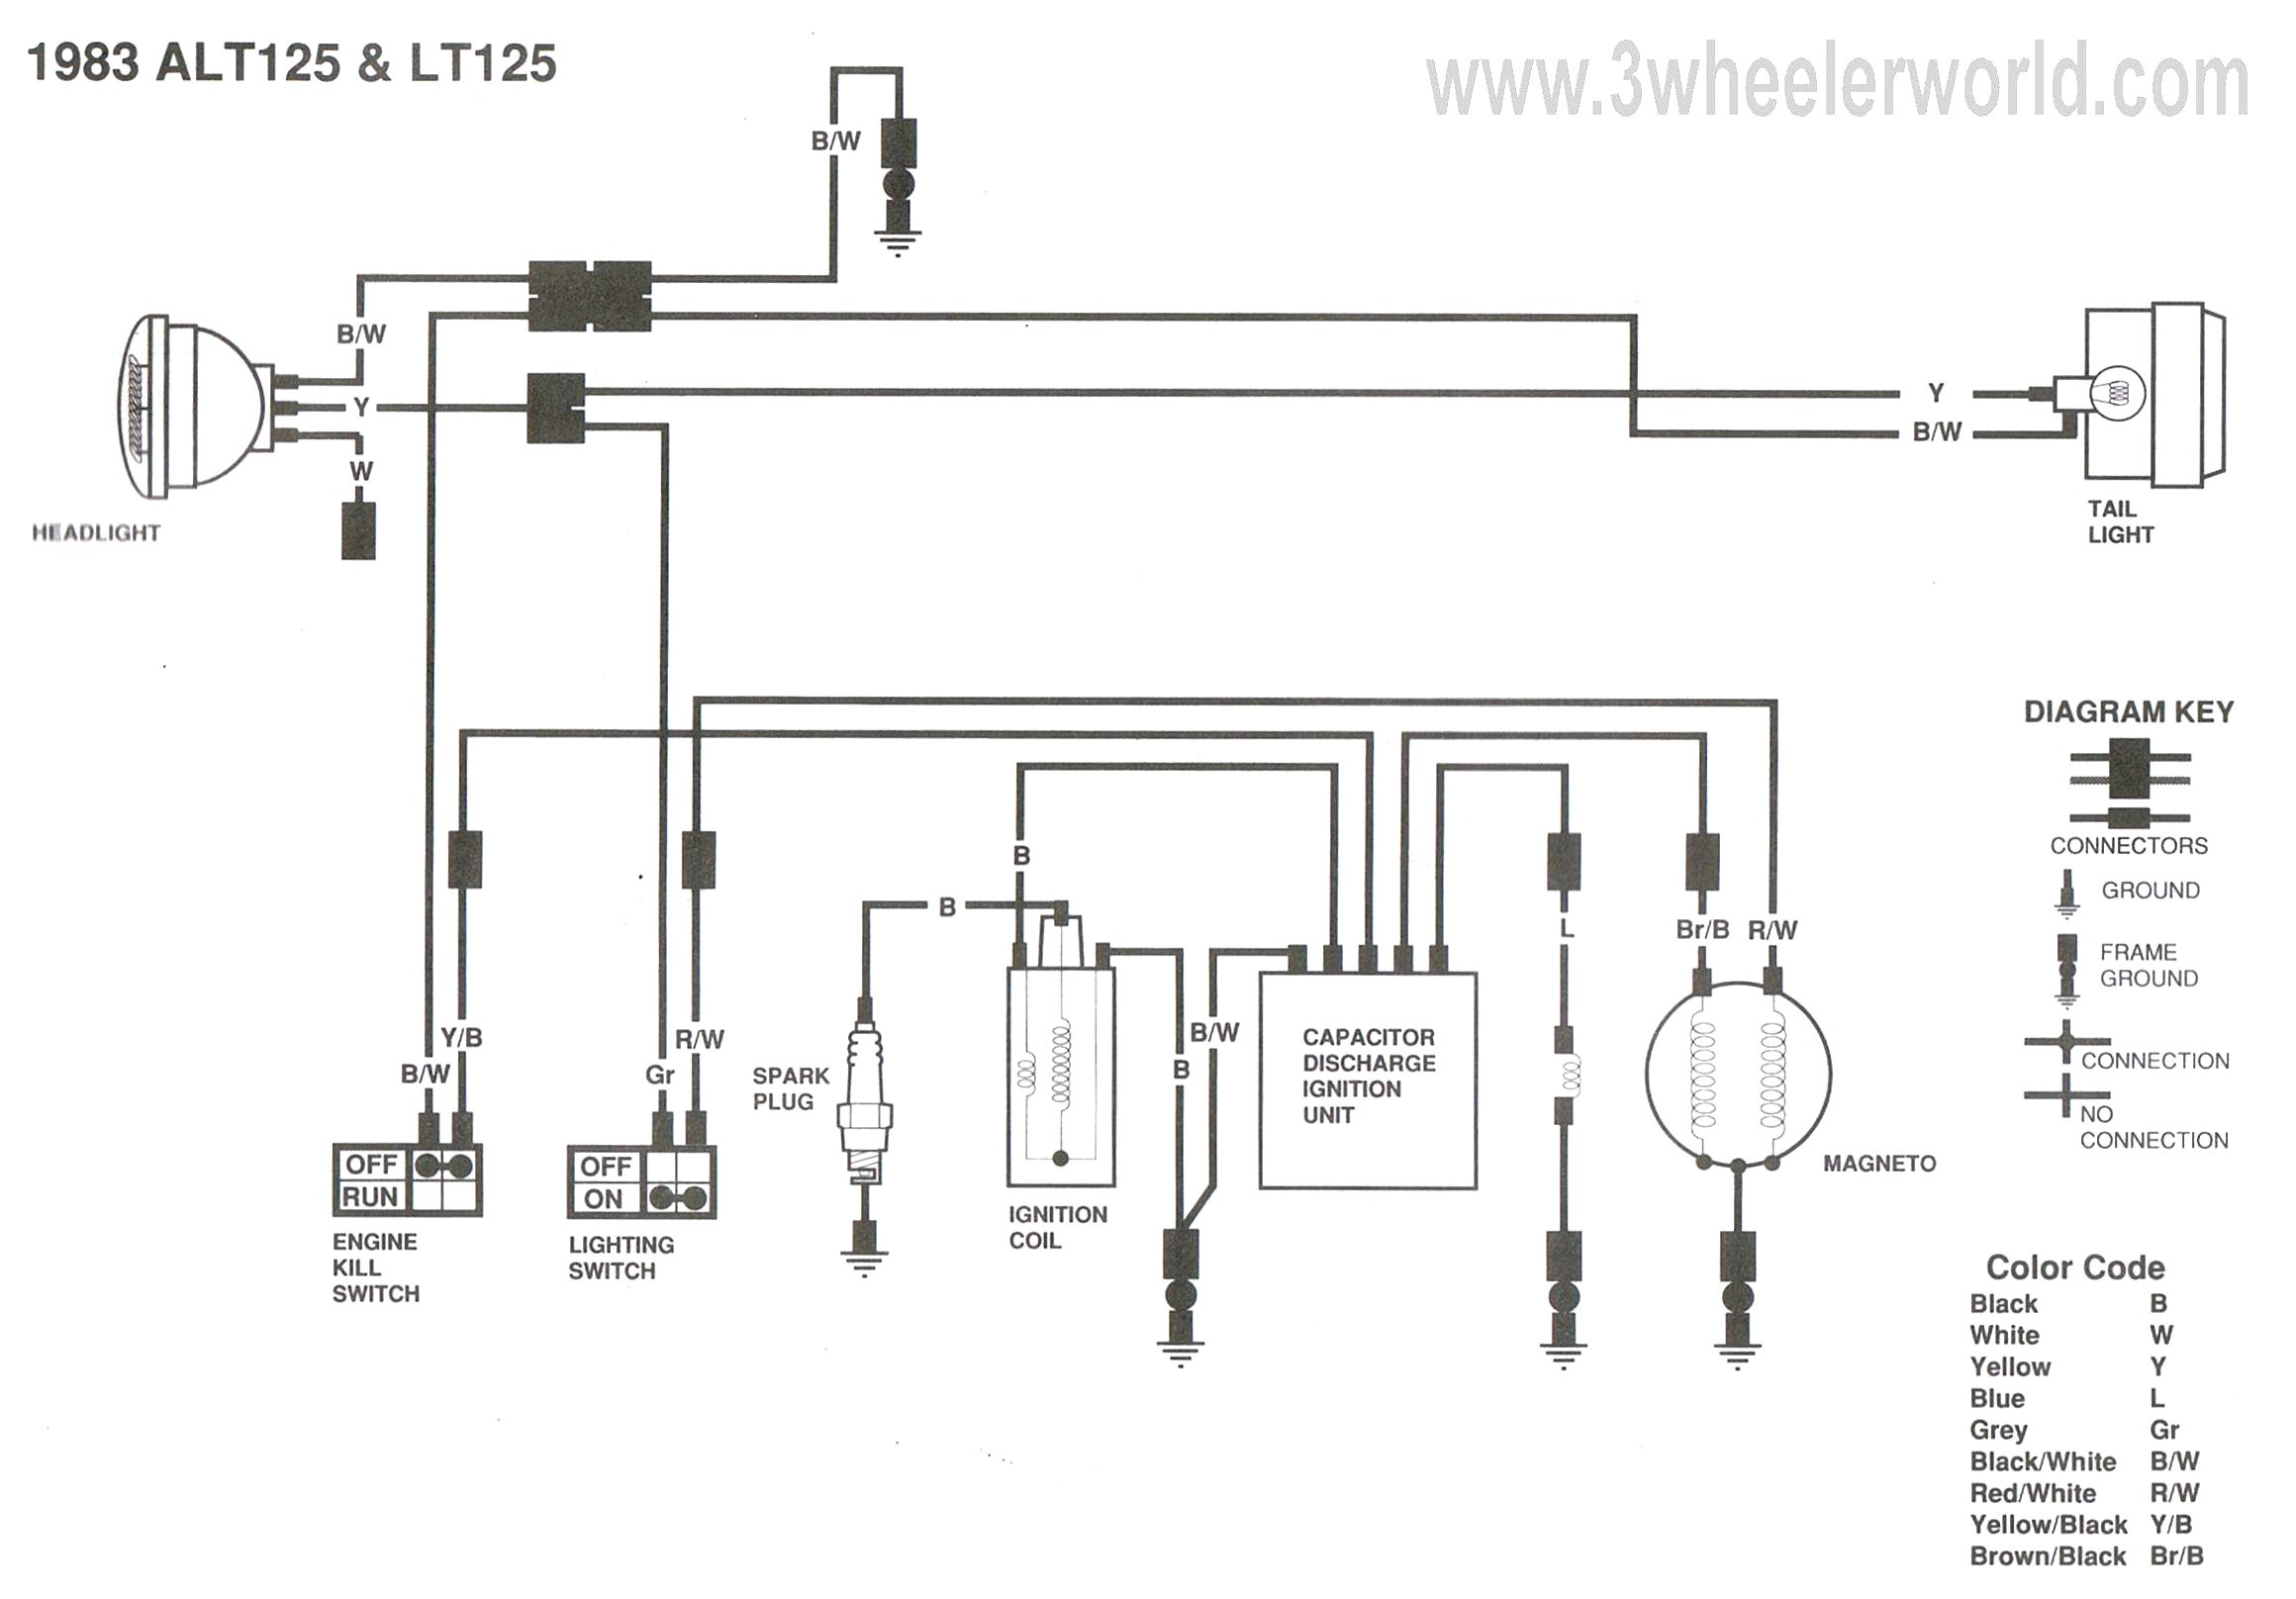 Kawasaki Bayou 220 Engine Diagram Kfx 80 Wiring Diagram Worksheet and Wiring Diagram • Of Kawasaki Bayou 220 Engine Diagram Wiring Diagram Kawasaki Bayou 220 New Electrical Wiring Circuit